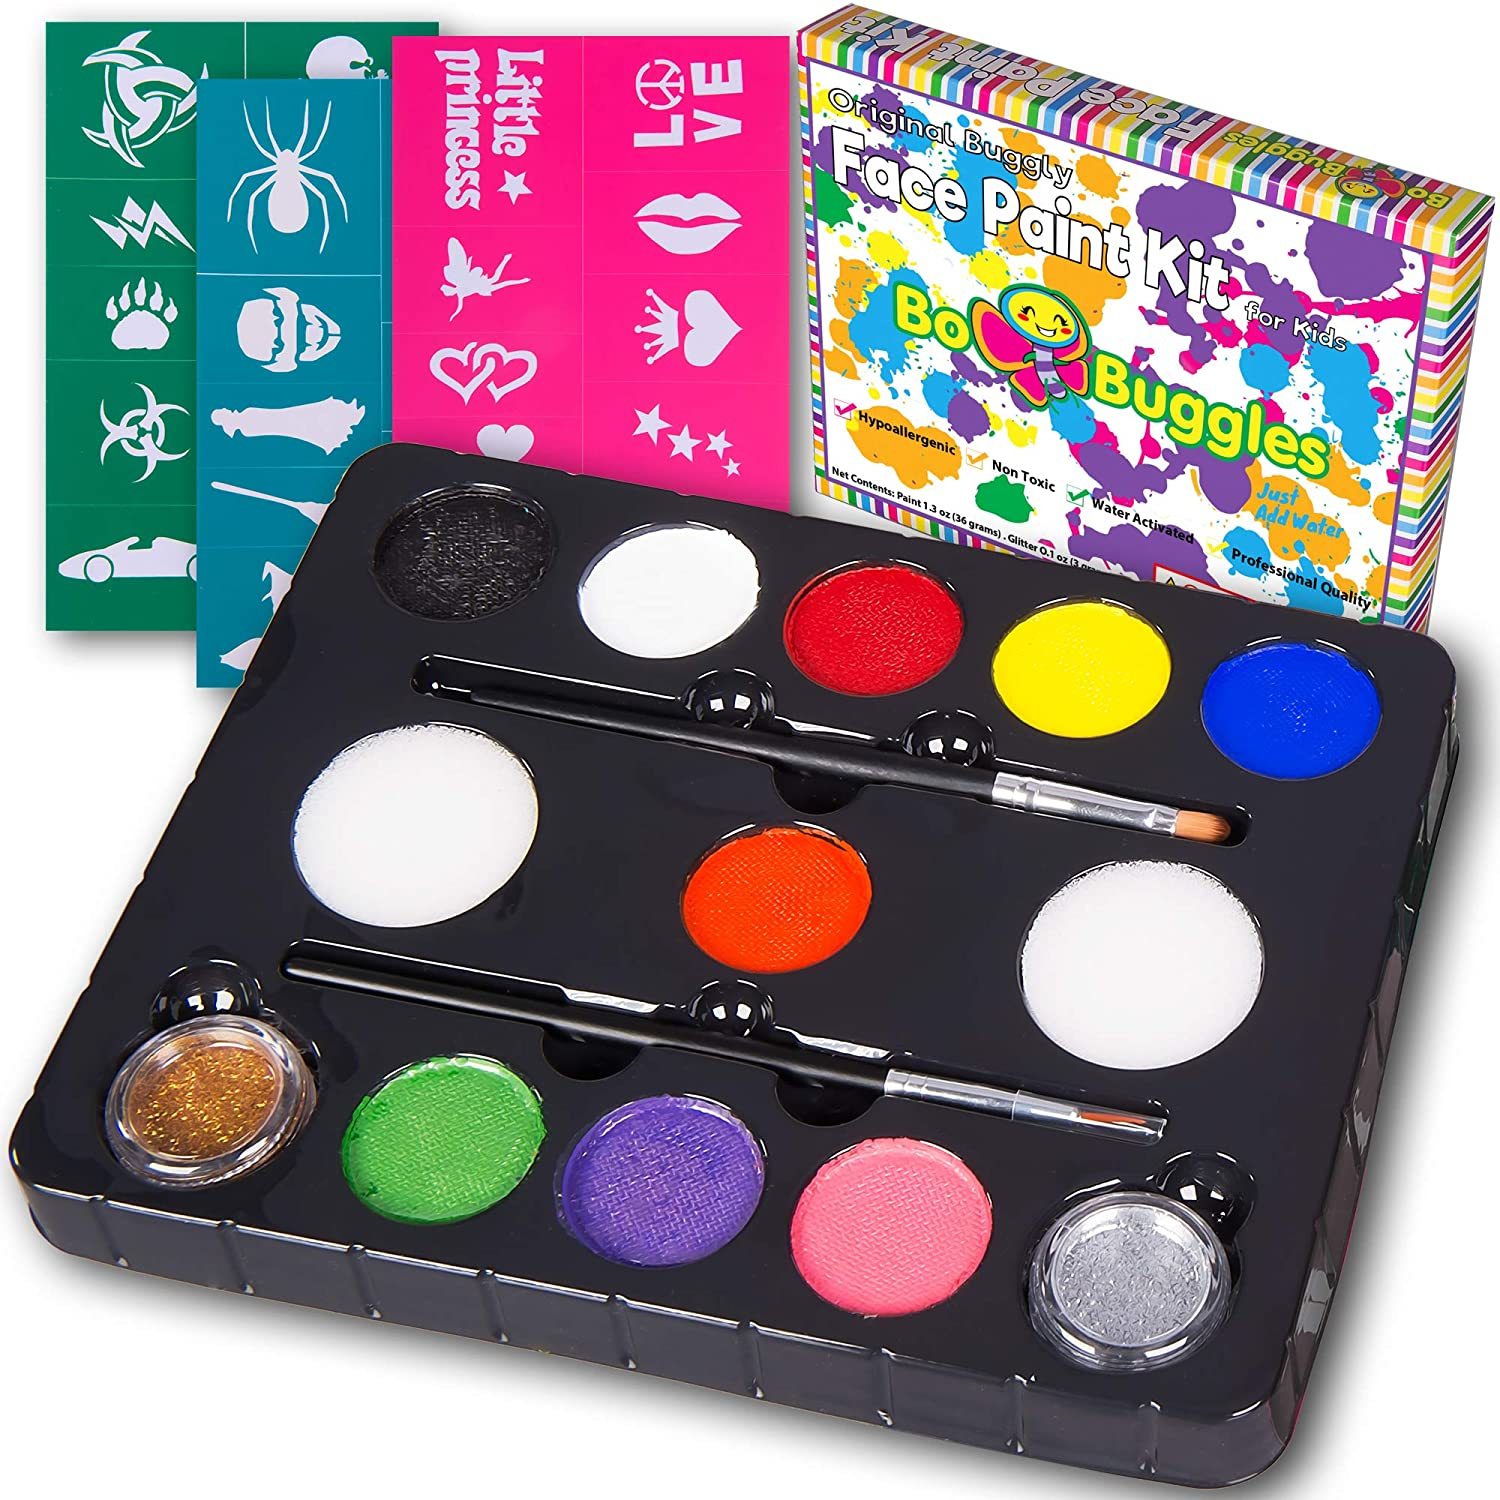 Bo Buggles Face Paint Kit with 30 Stencils, 9 Paints + 2 Glitters Original Buggly Kit for Kids